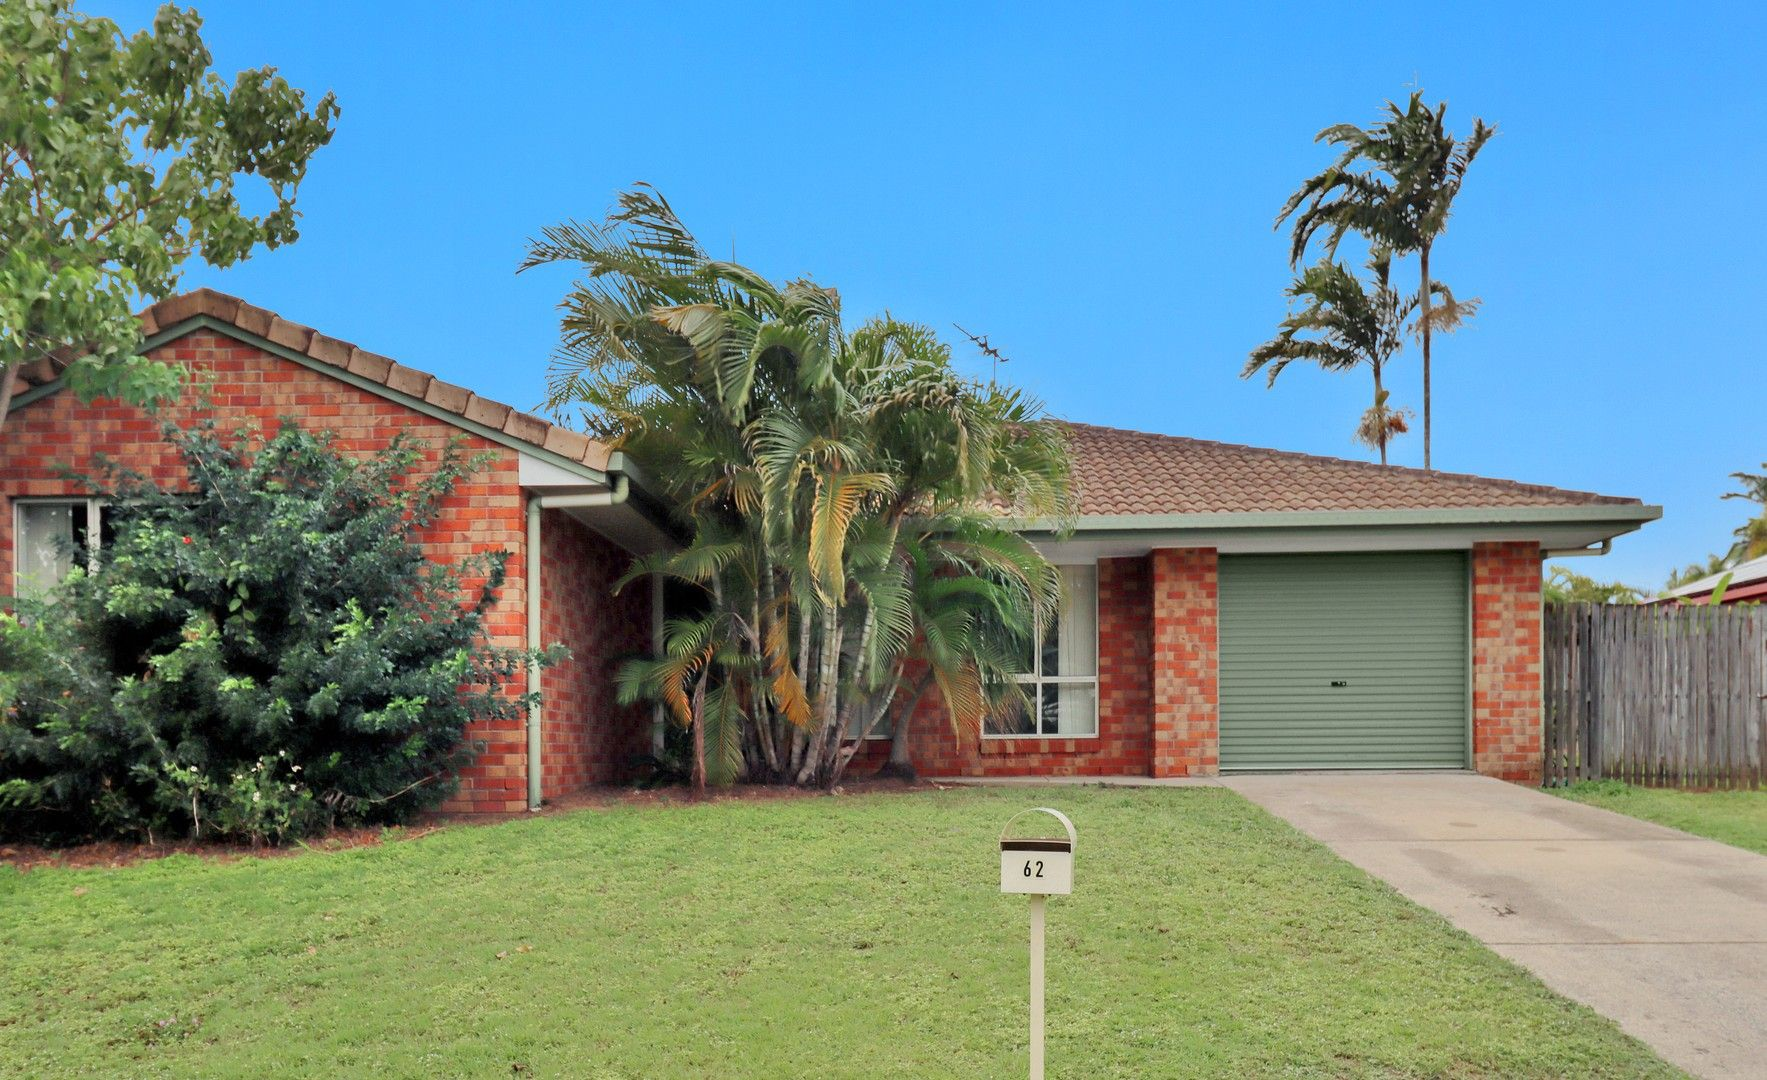 62 Tropical Avenue, Andergrove QLD 4740, Image 0